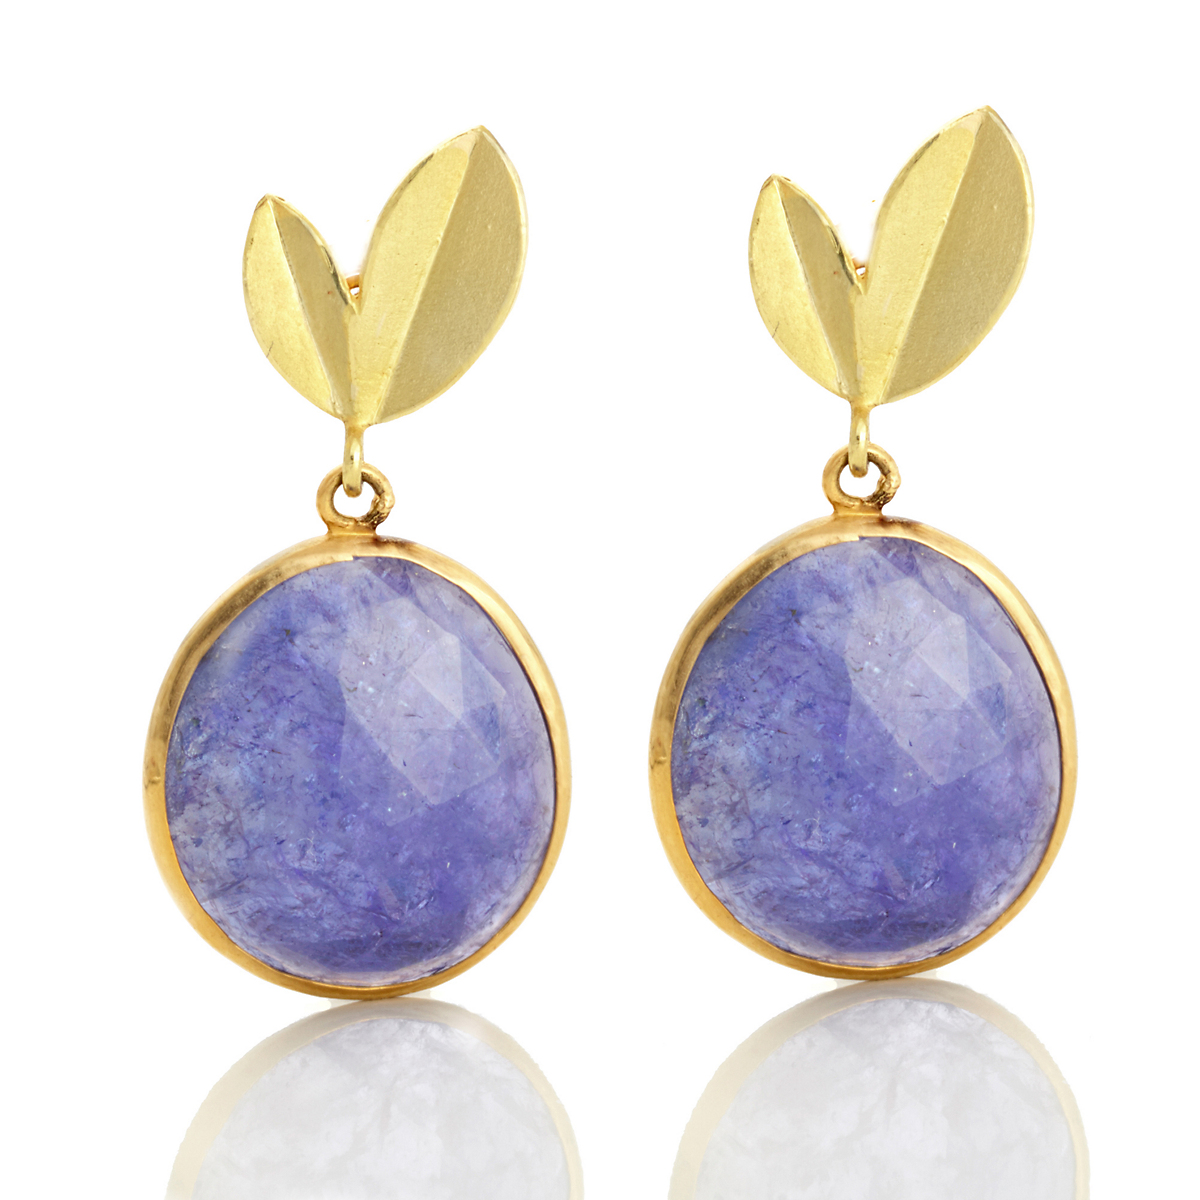 Barbara Heinrich Two Leaf Top Tanzanite Rose Cut Earrings